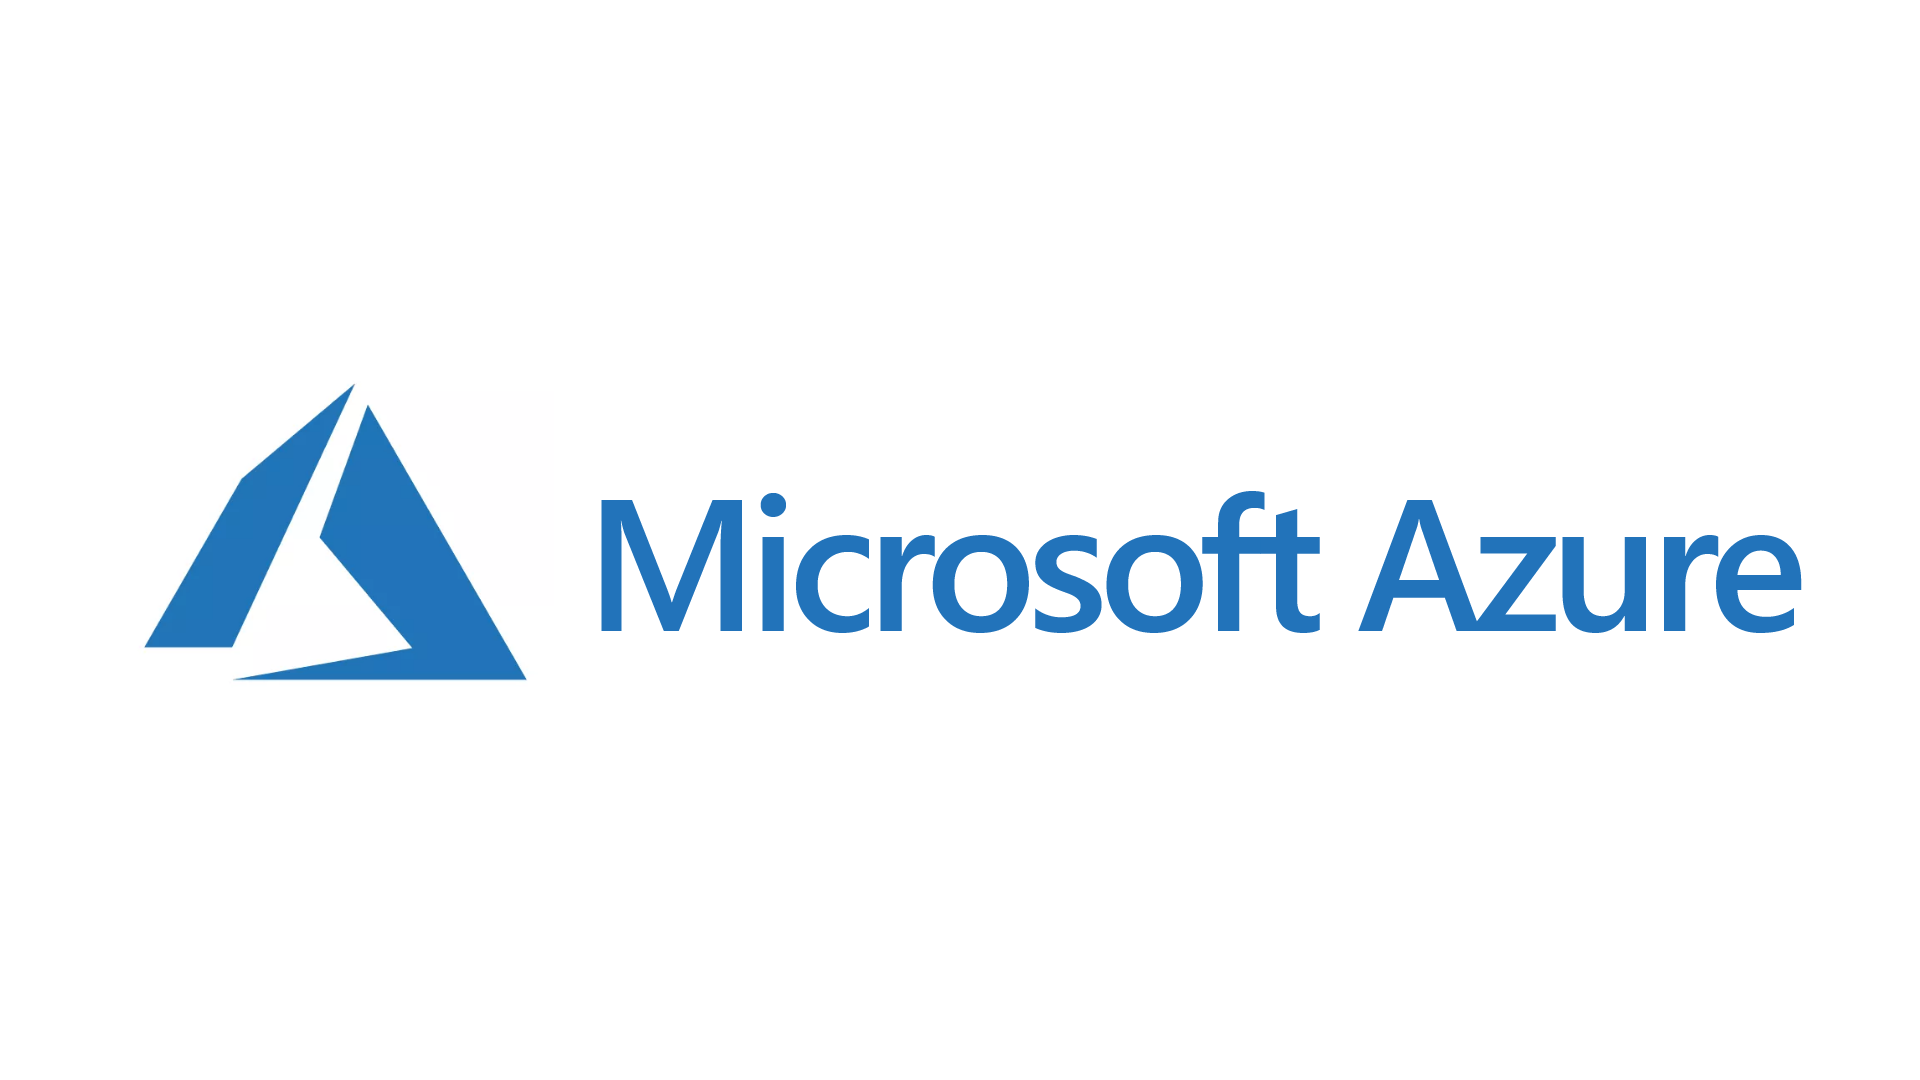 Microsoft Azure 12 Month of Free Service